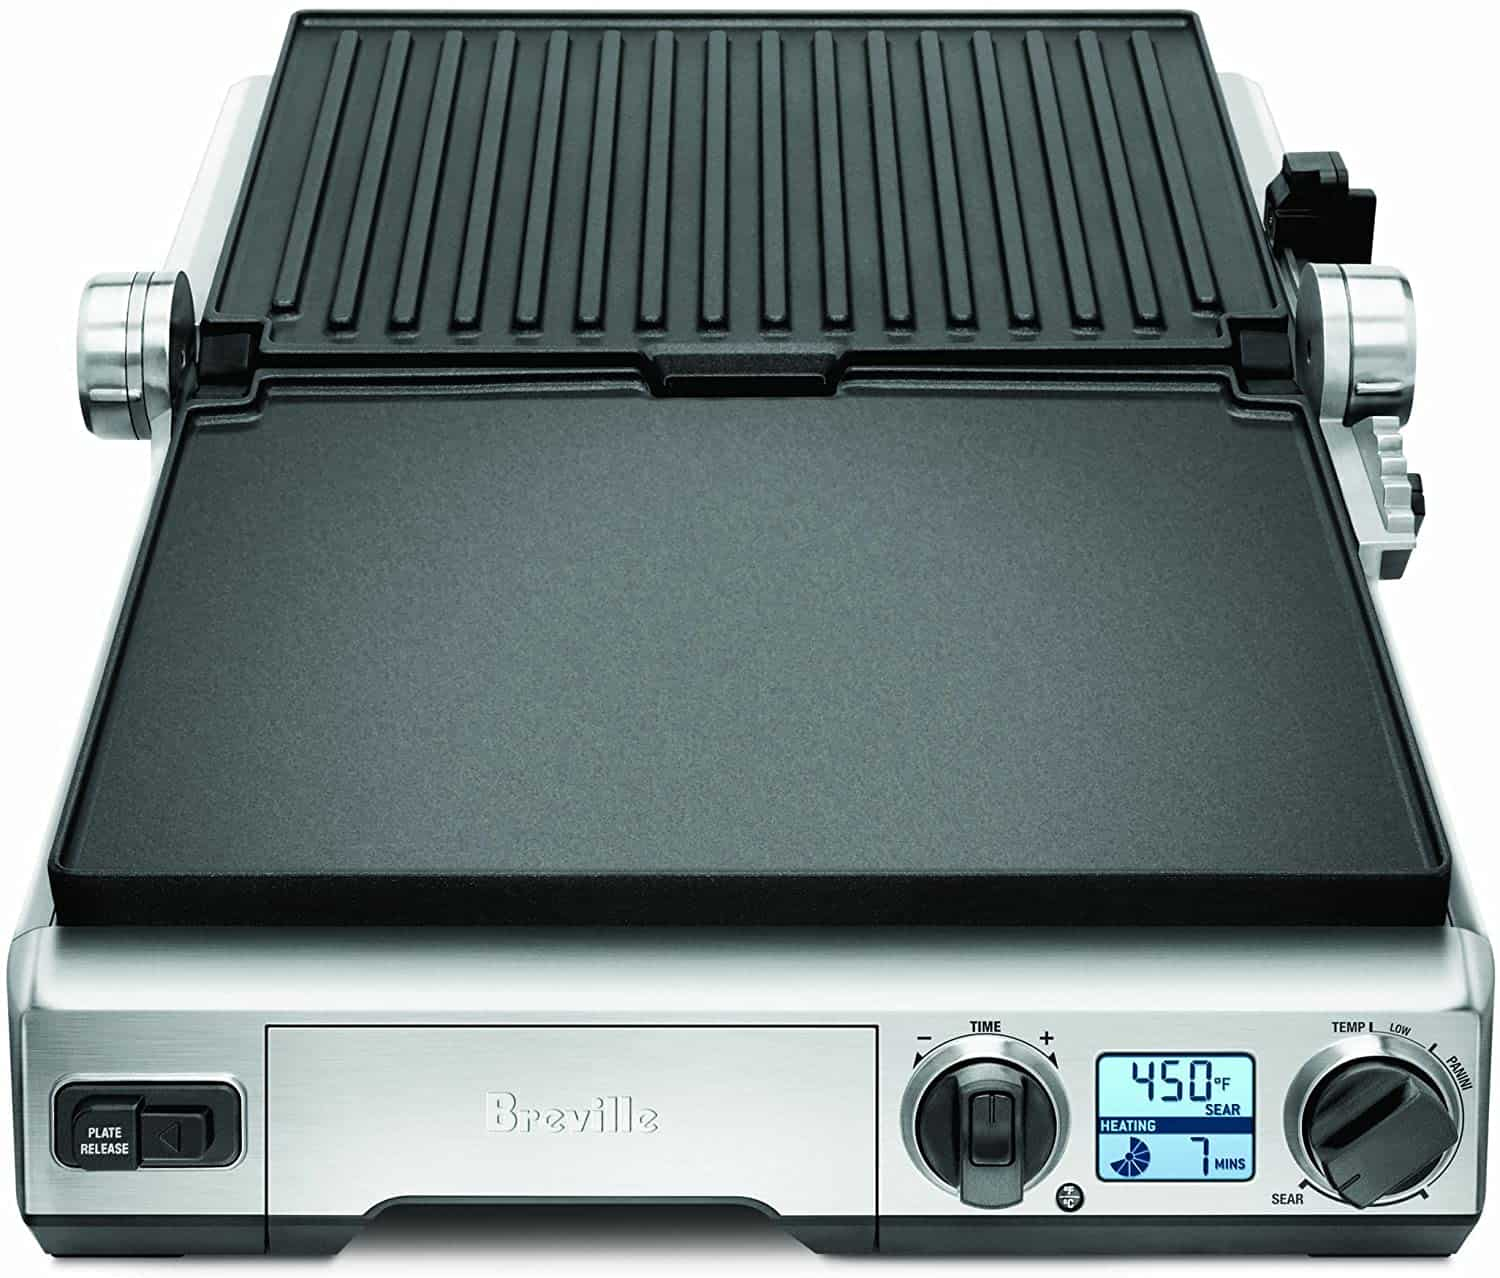 Best indoor grill with a flat 'BBQ mode'- Breville BGR820XL Smart Grill